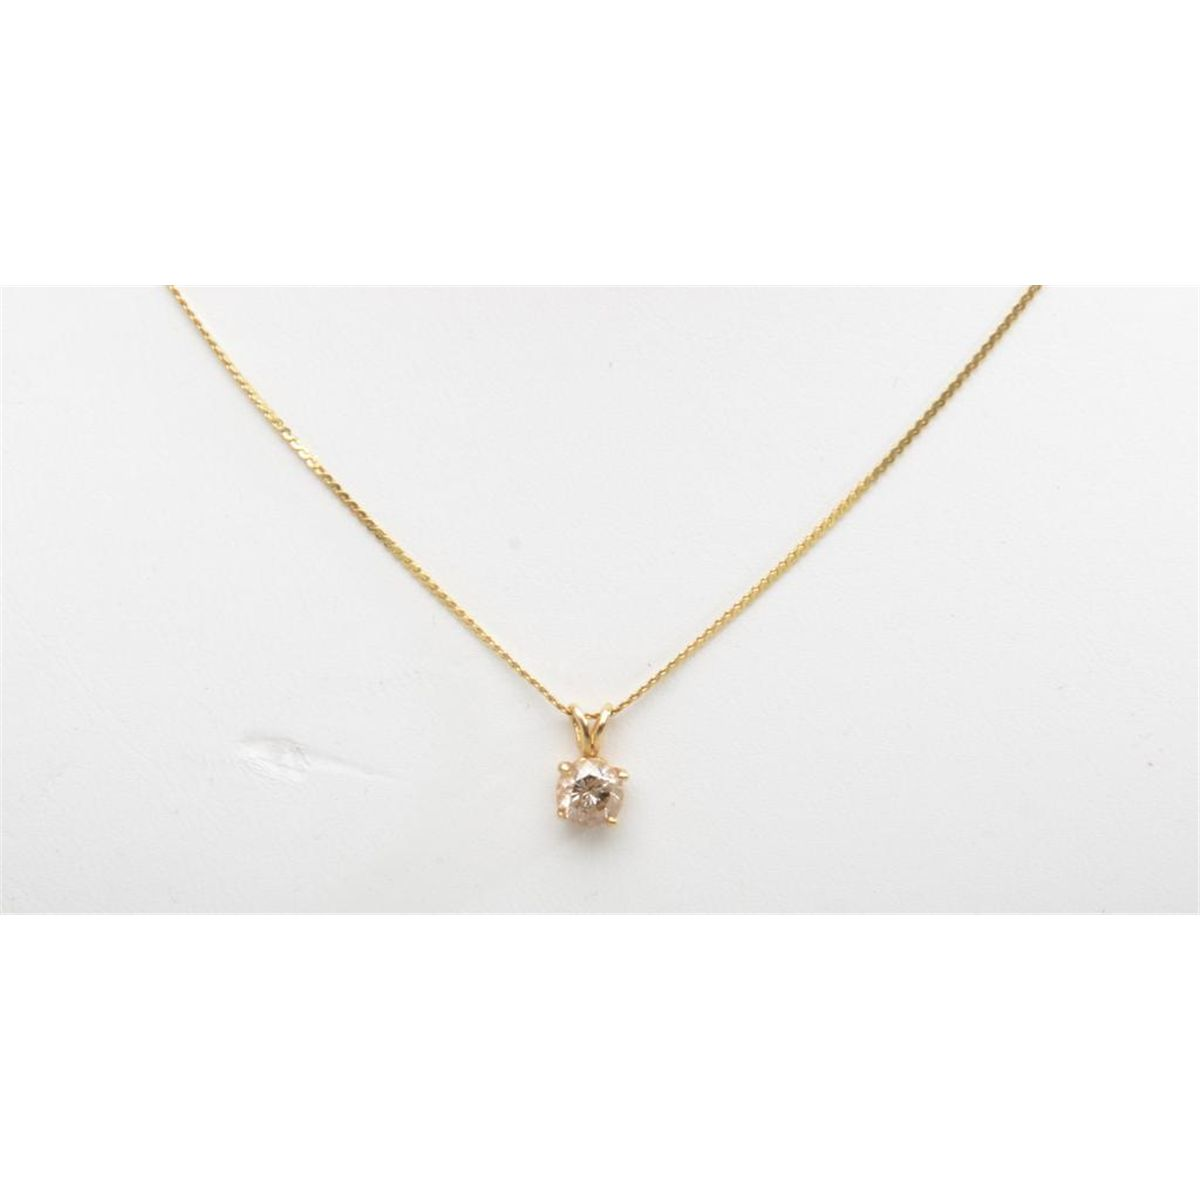 Diamond Pendant on gold chain. Modern design. Est.: $100-$200.